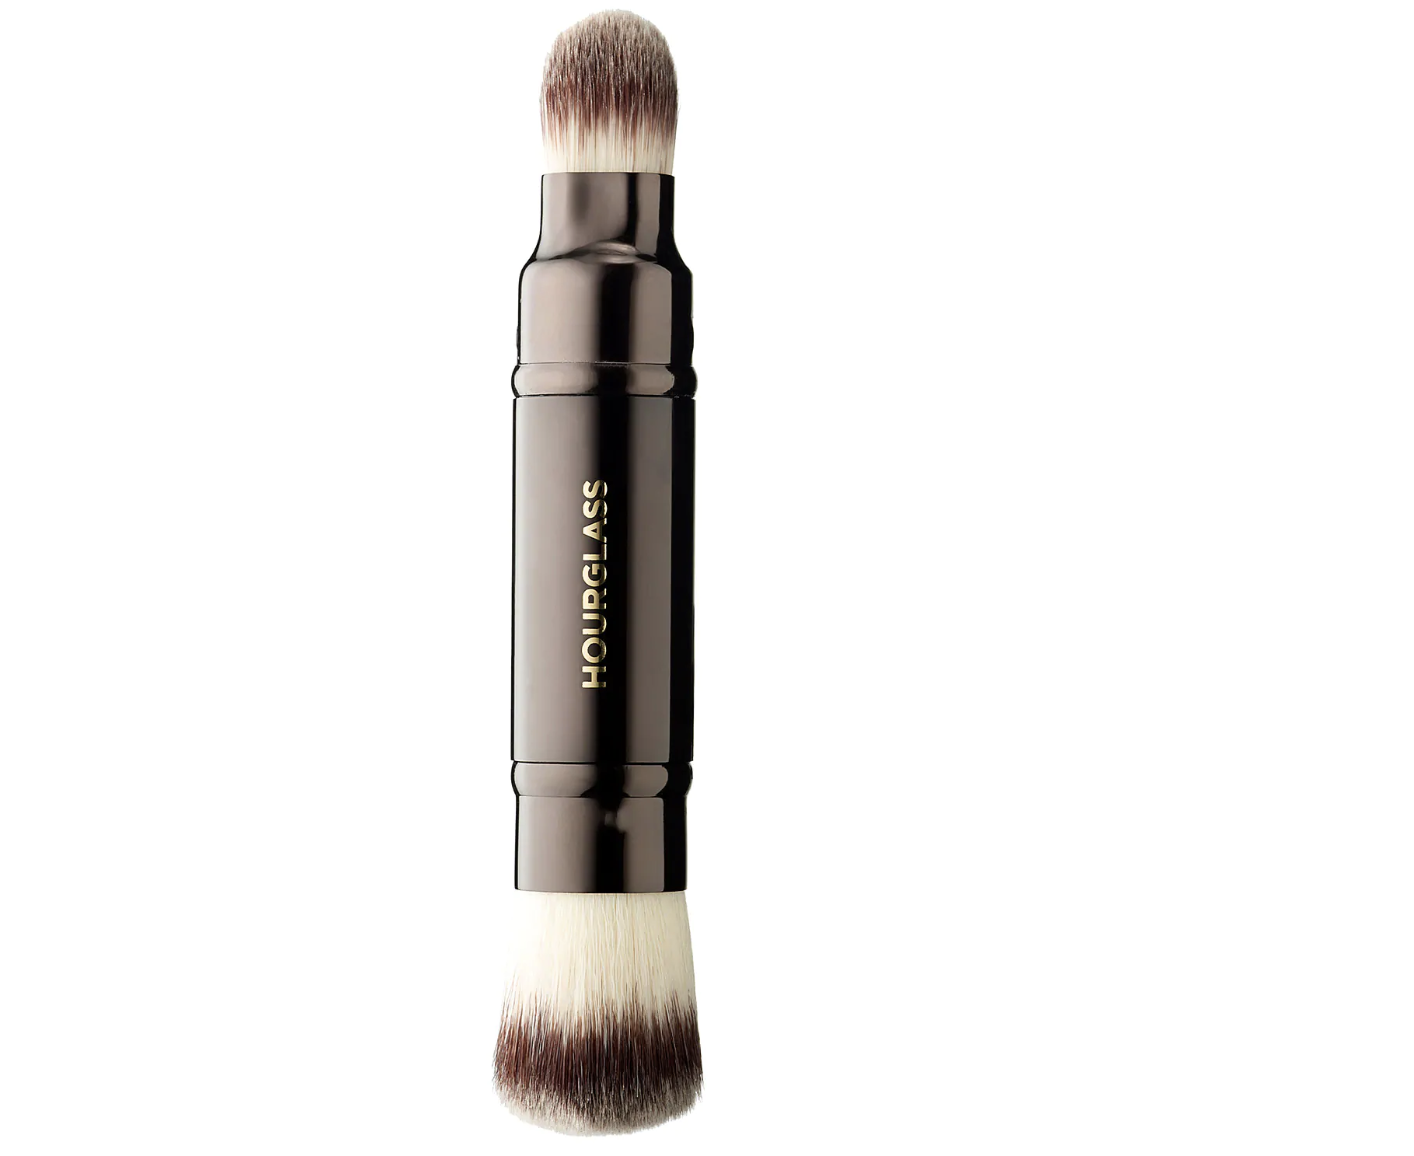 Hourglass makeup brush